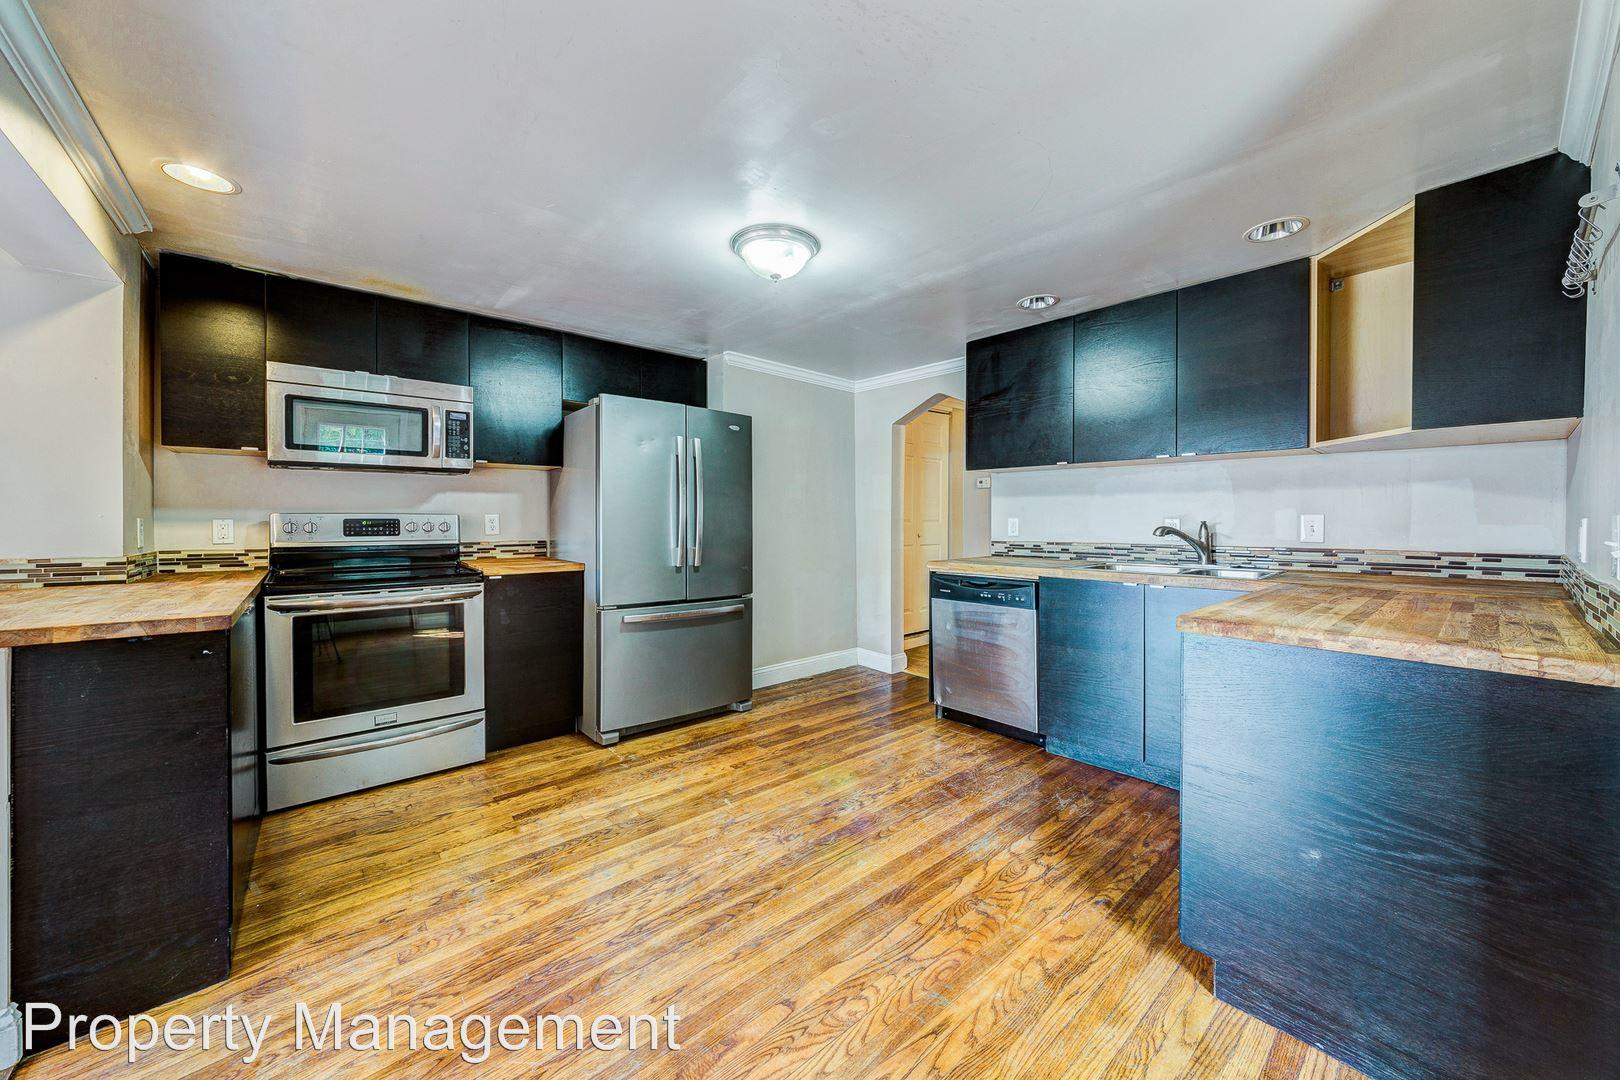 59 Barry St For Rent - Pittsburgh, PA | Trulia